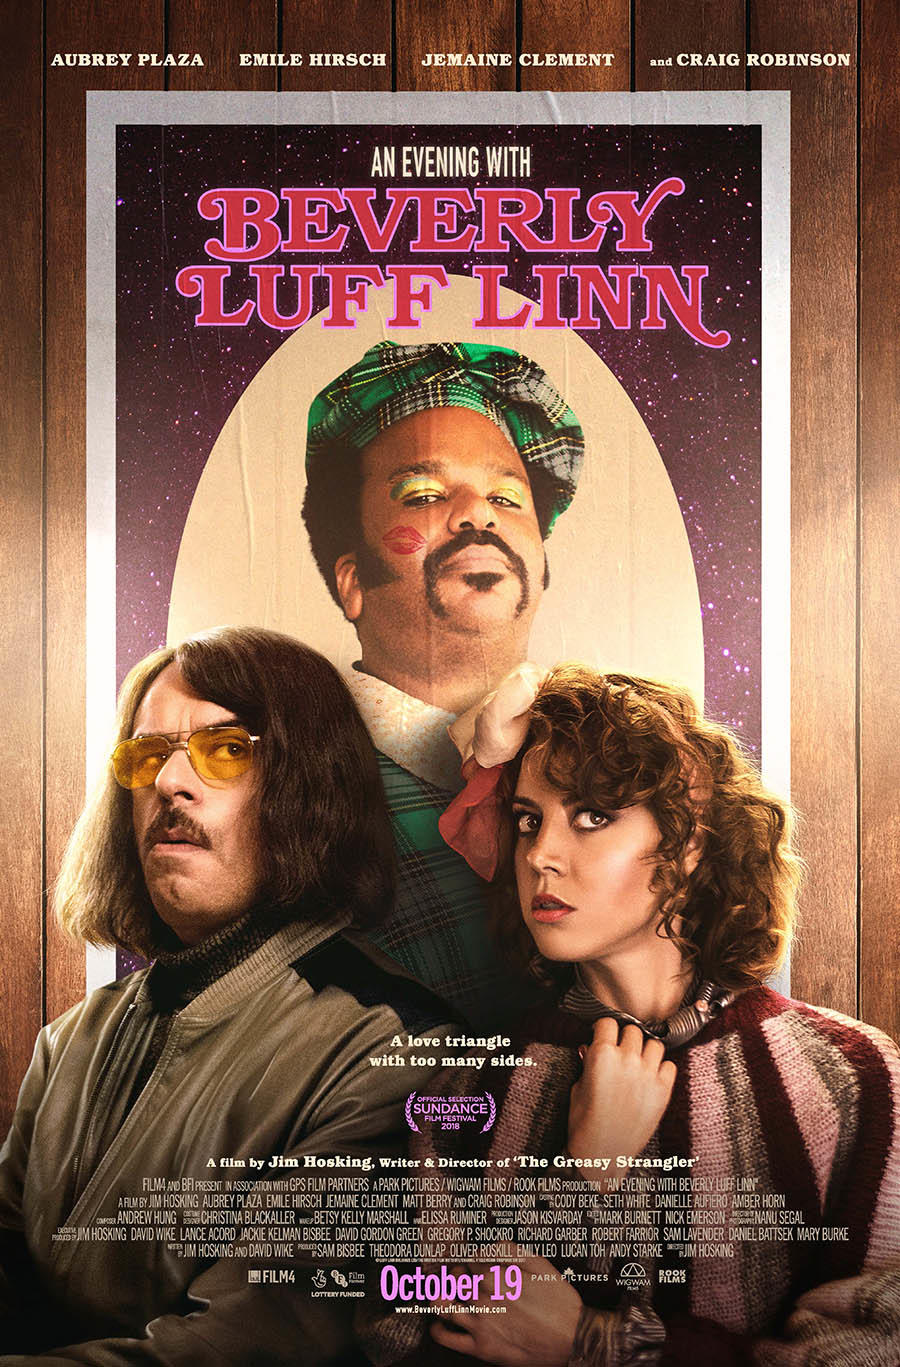 An Evening with Beverly Luff Linn poster art